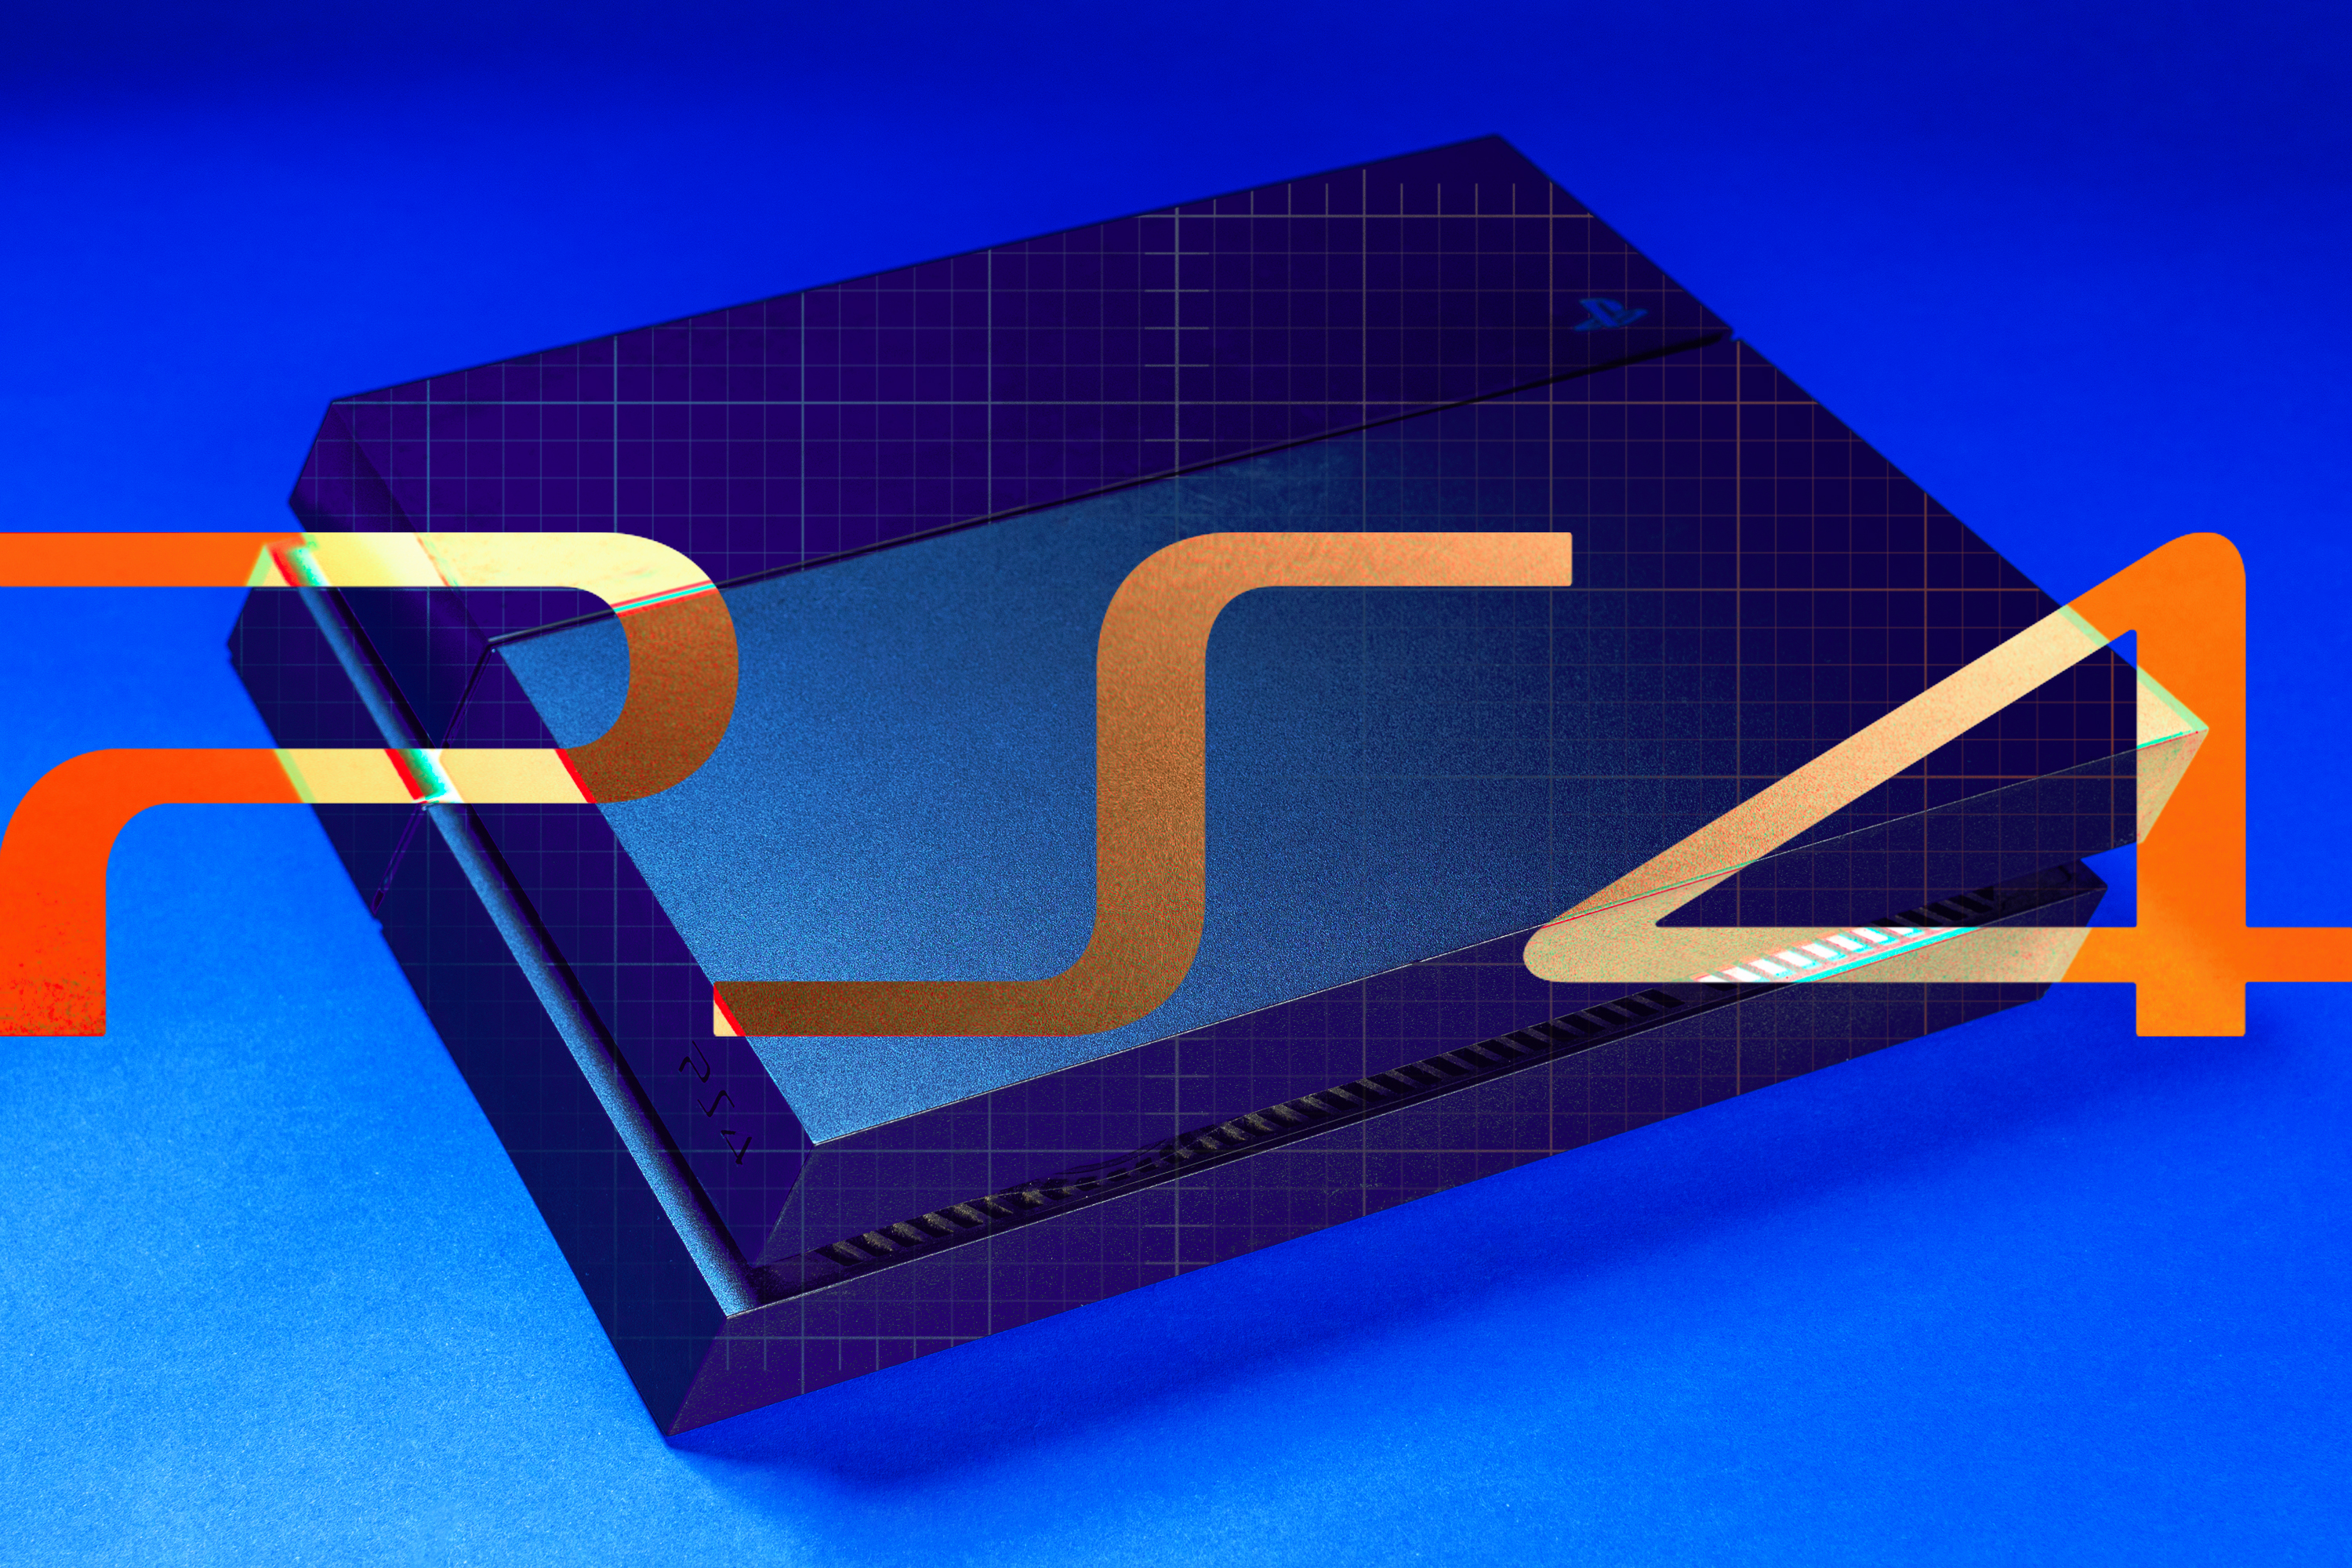 """Graphic illustration of PS4 console on blue background with """"PS4"""" in bright orange/brown letters in the foreground."""